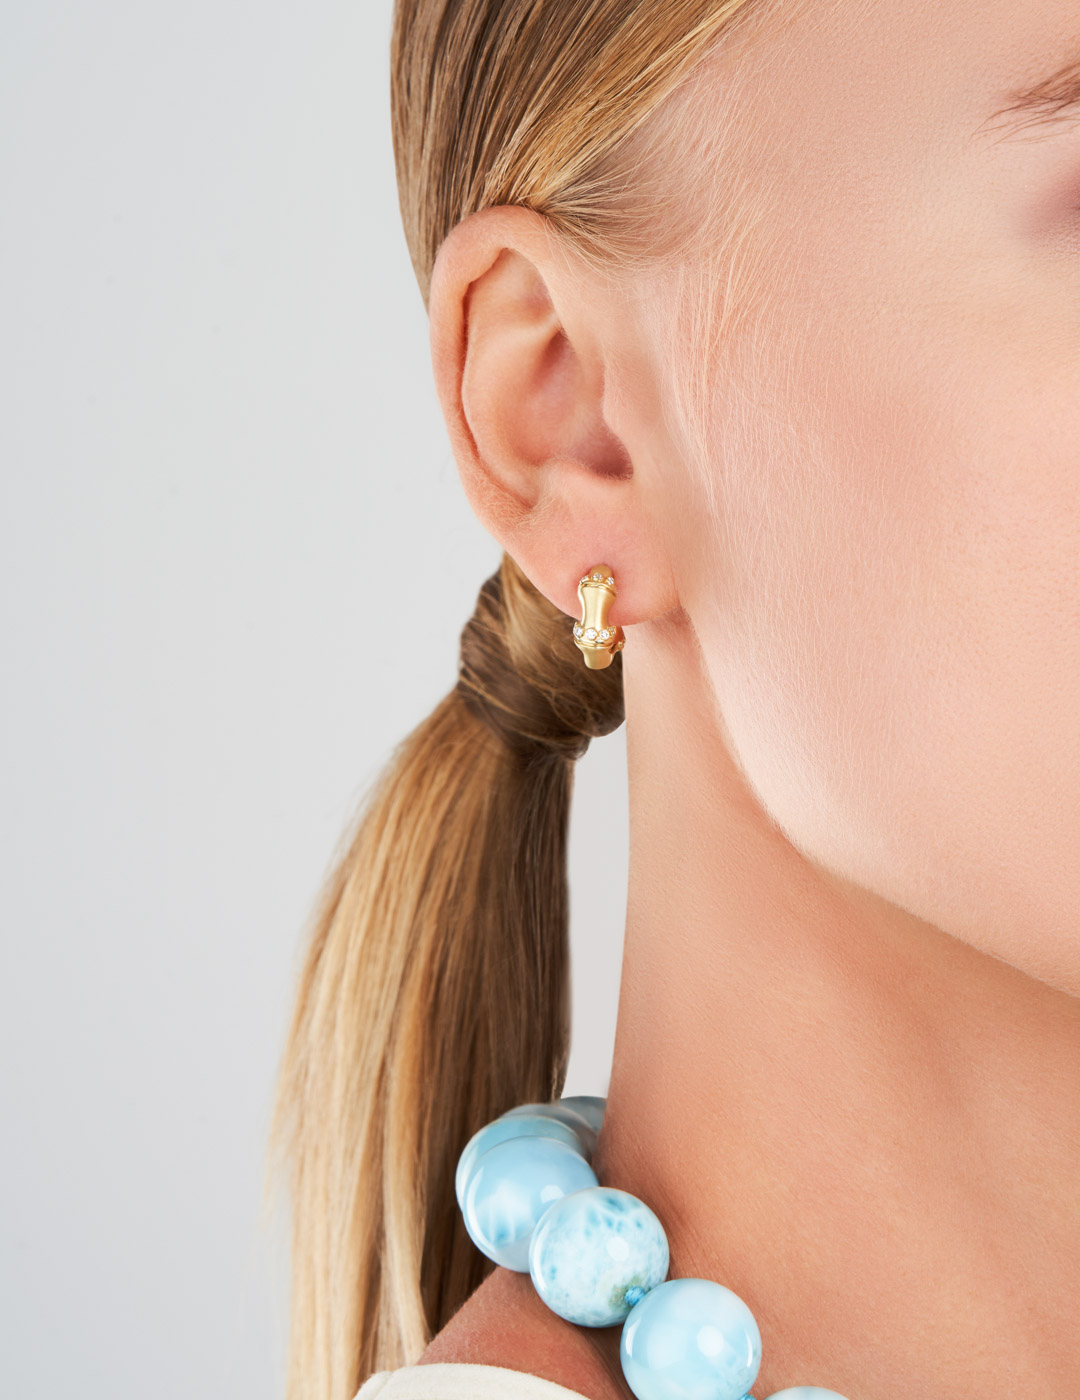 mish_products_earrings_Jungle-Hoops-YG-2